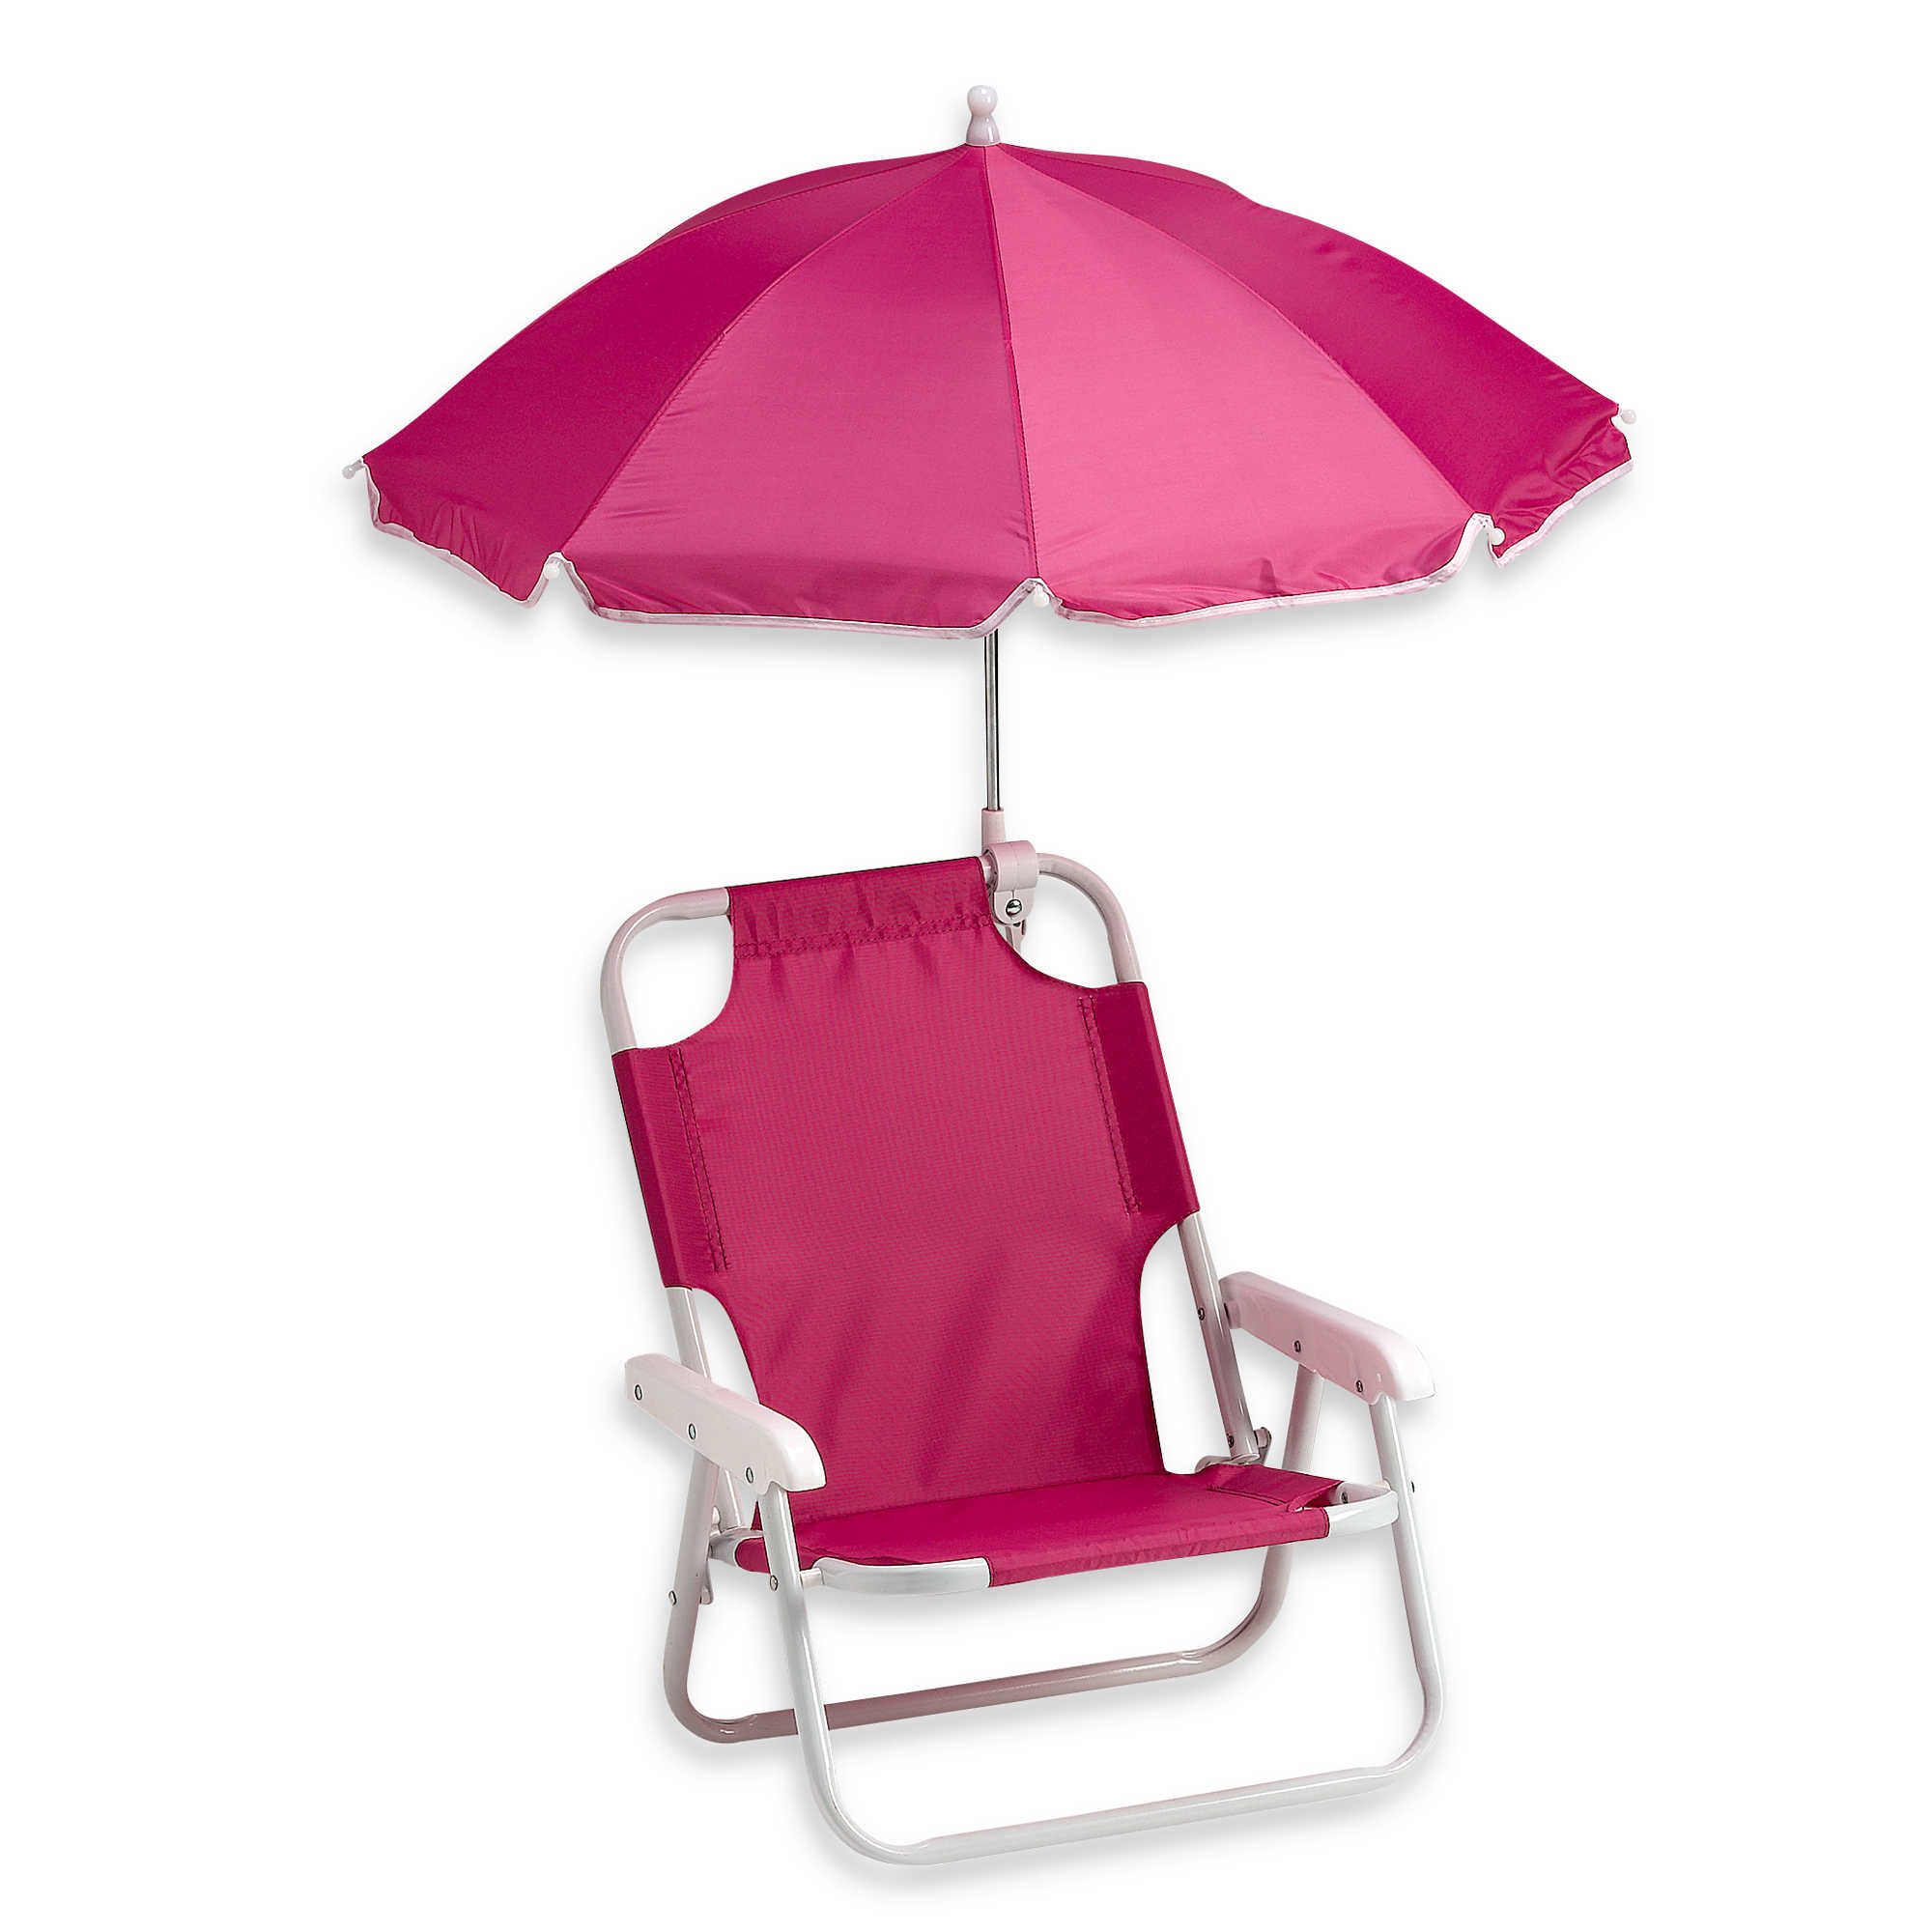 Folding Beach Chair with Umbrella Purple Pumpkin Gifts